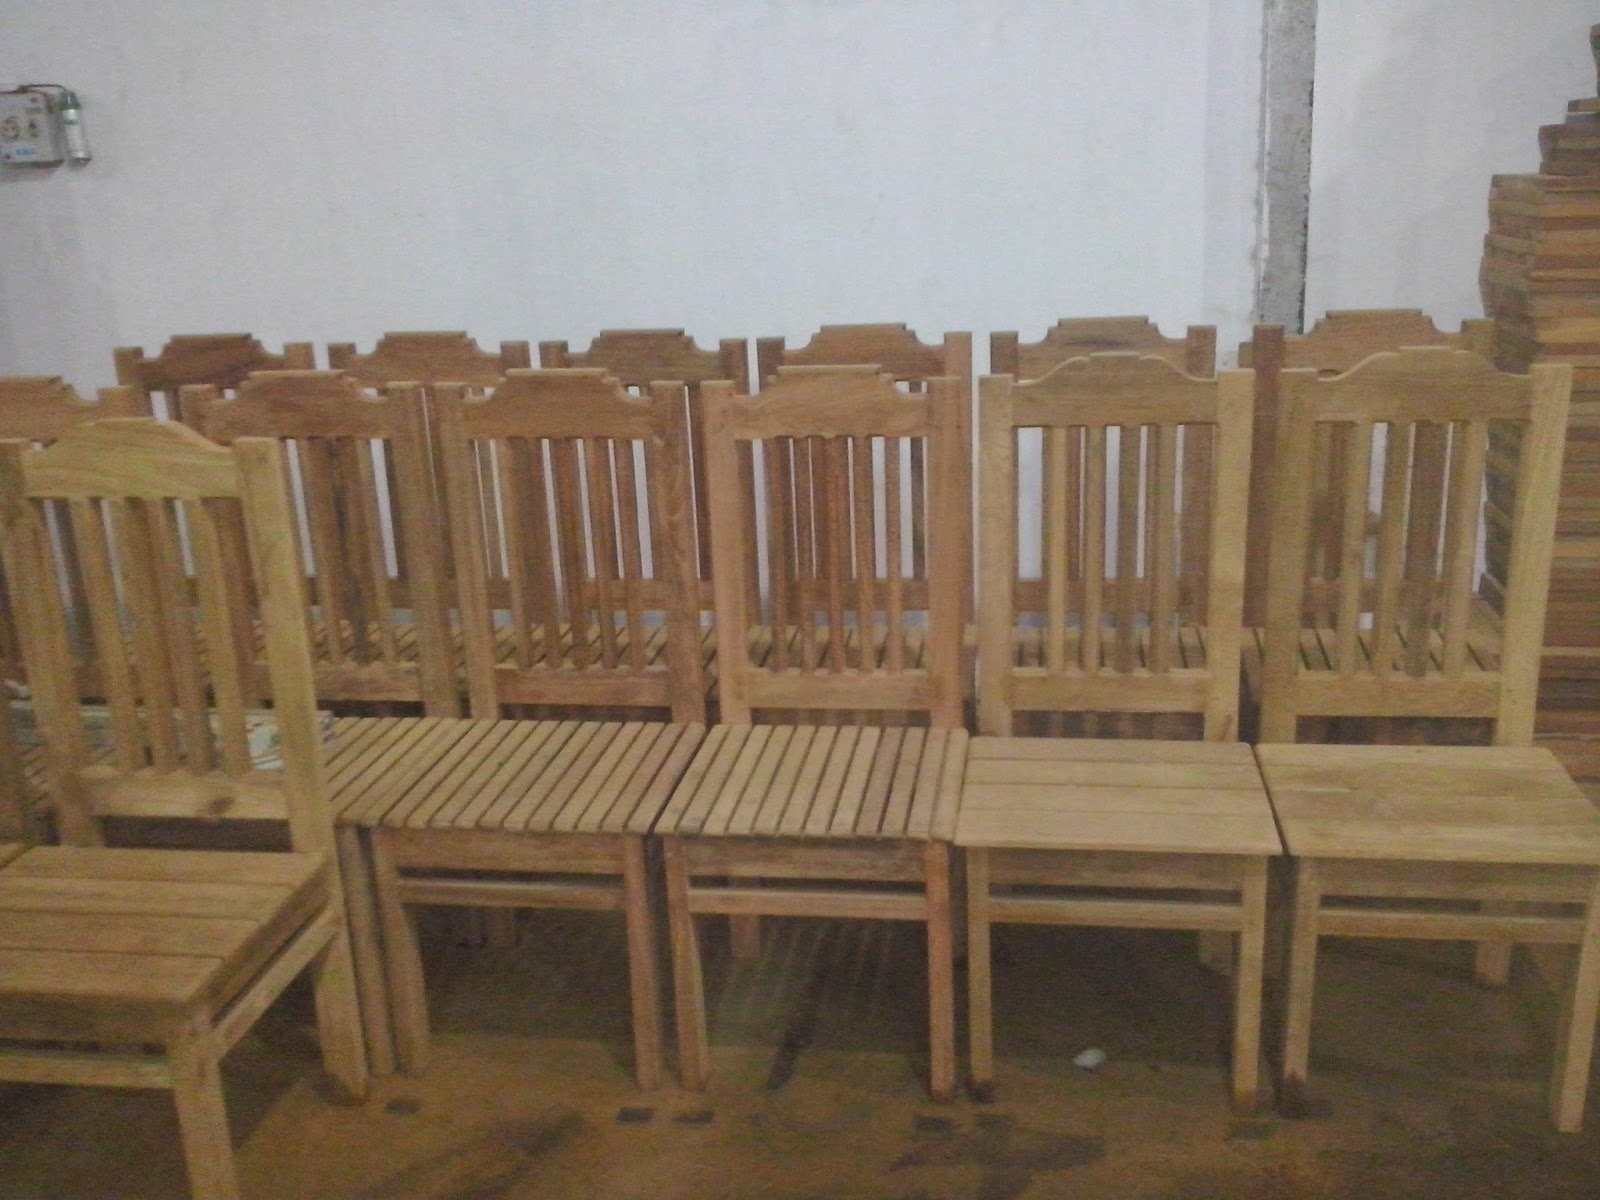 kerala style Carpenter works and designs: Kerala Style ...